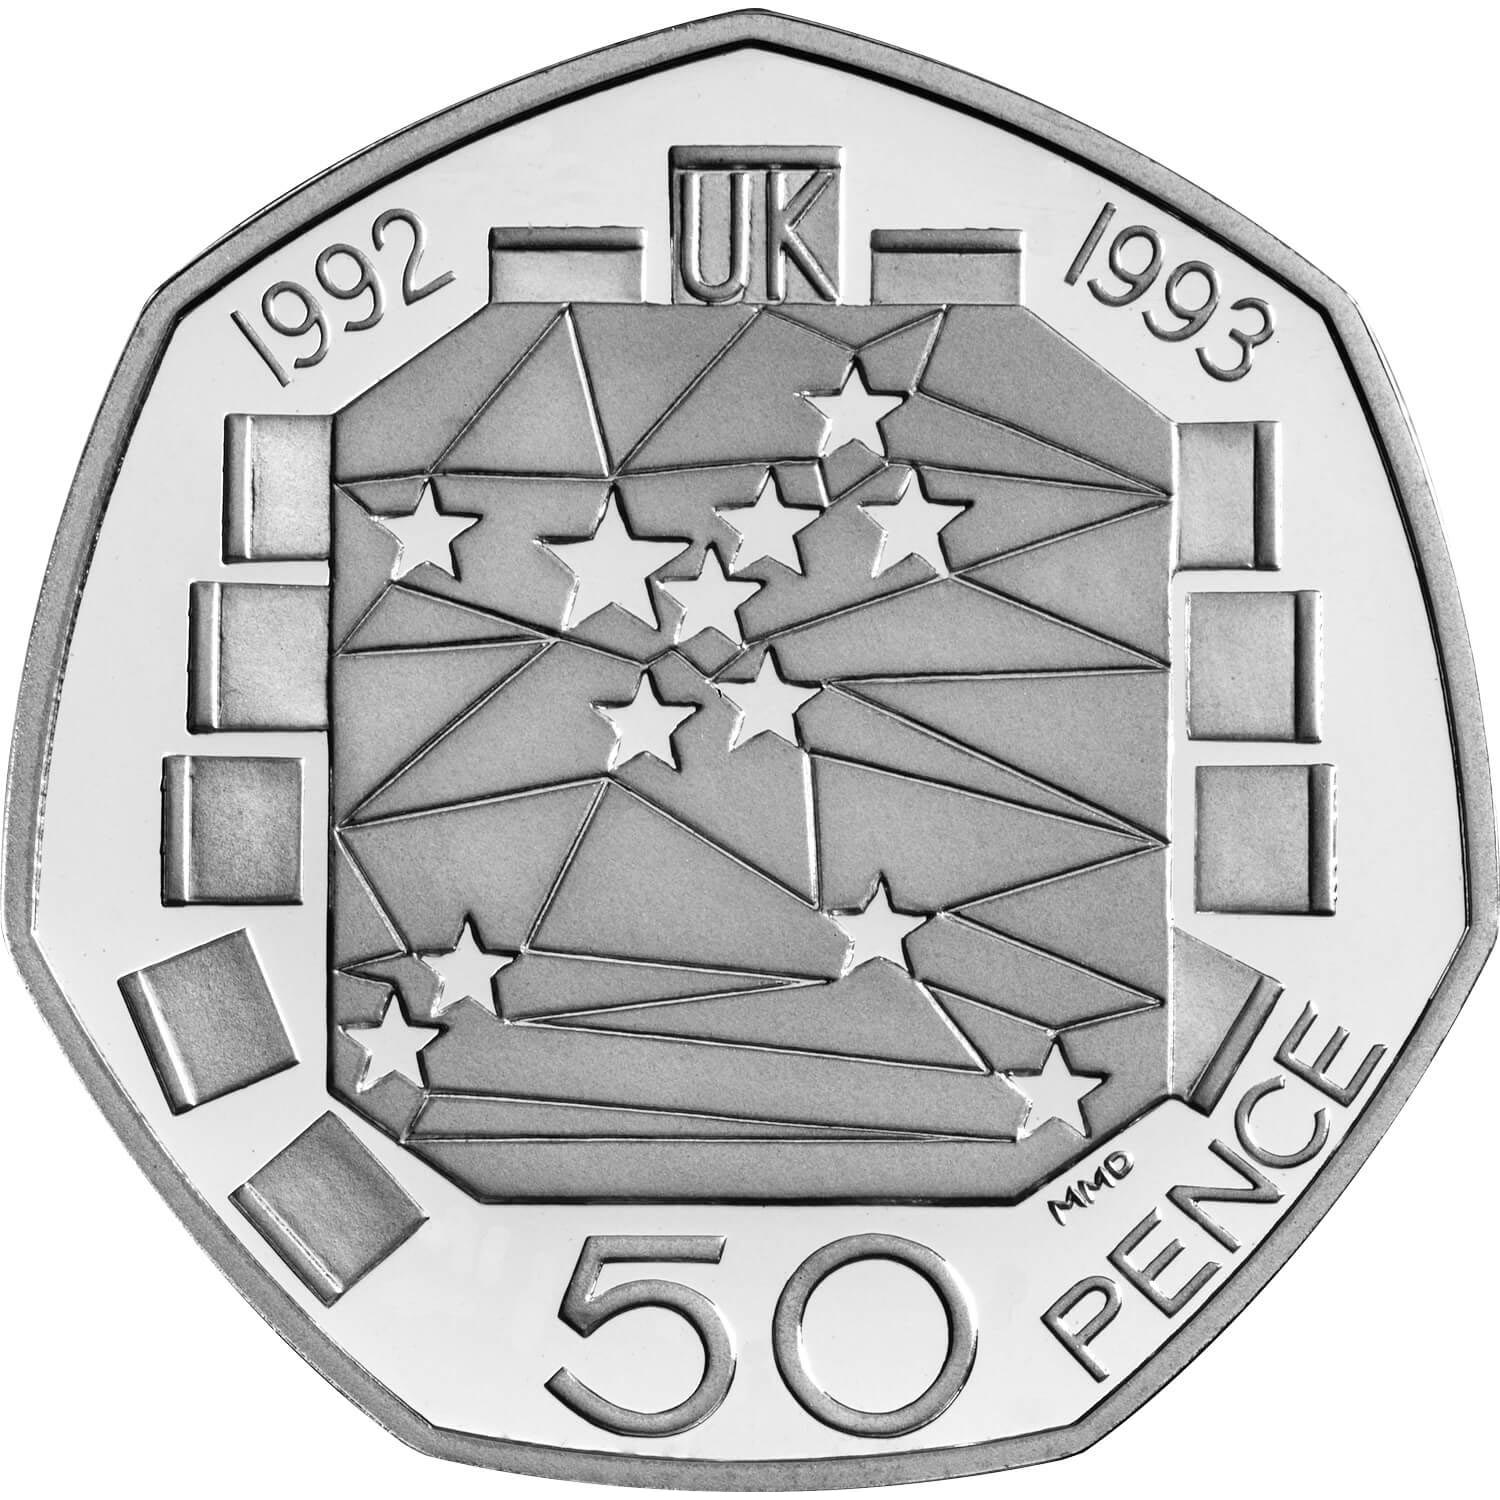 Fifty Pence 1992 Single Market: Photo 50p UK Presidency of the European Community